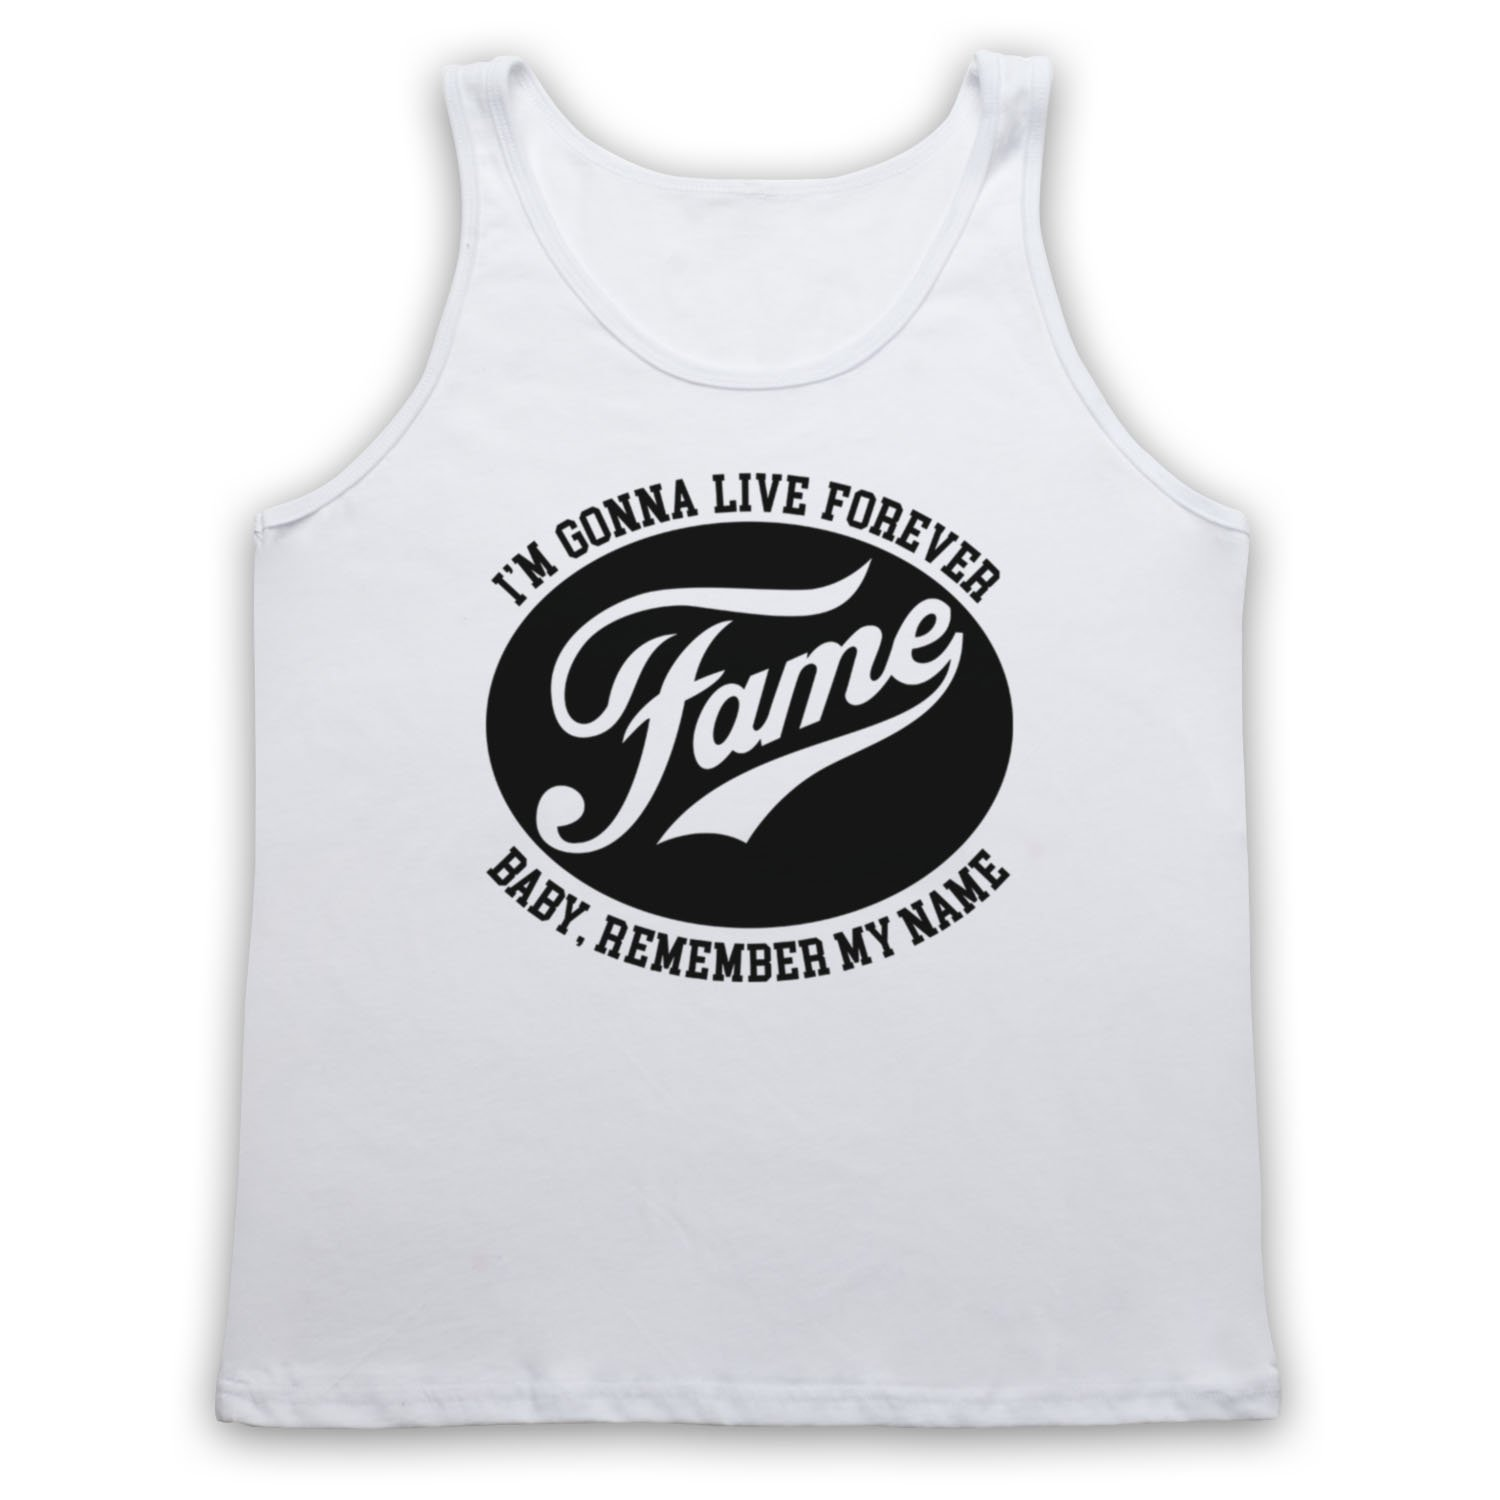 804438ab2e90 The Guns Of Brixton Fame I'm Gonna Live Forever Baby Remember My Name Tank  Top Vest: Amazon.co.uk: Clothing